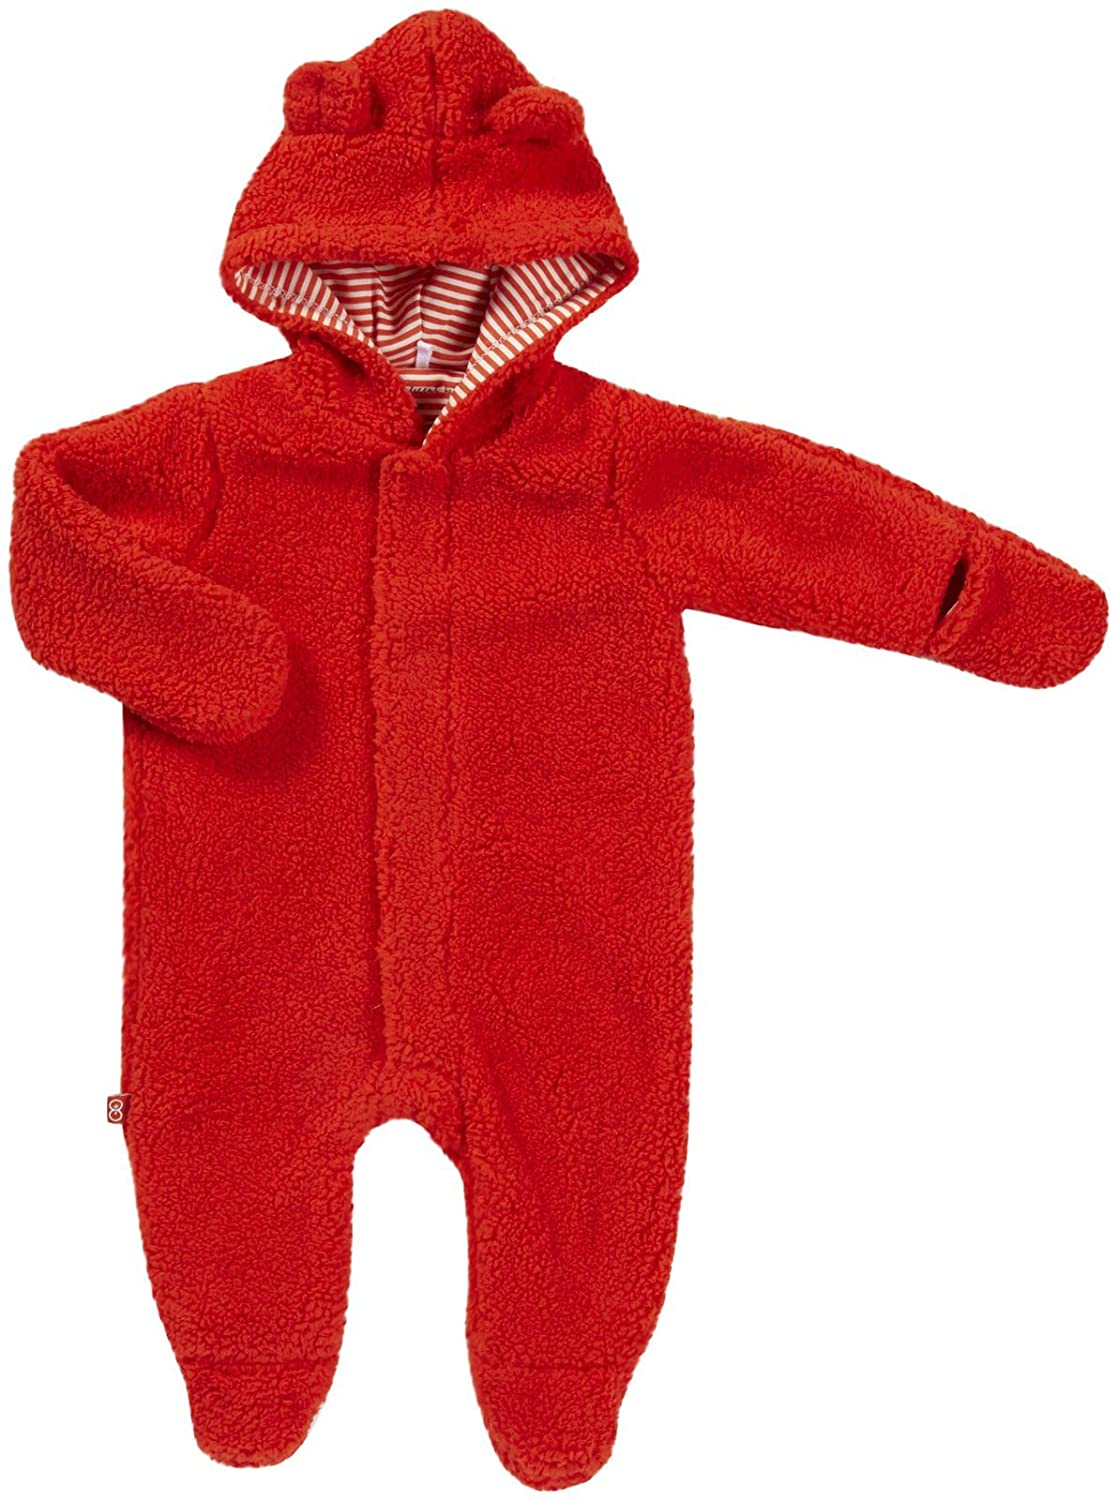 Magnificent Baby Hooded Bear Pra Months, Newborn, 1-Pack, Mocha 5025U--NB